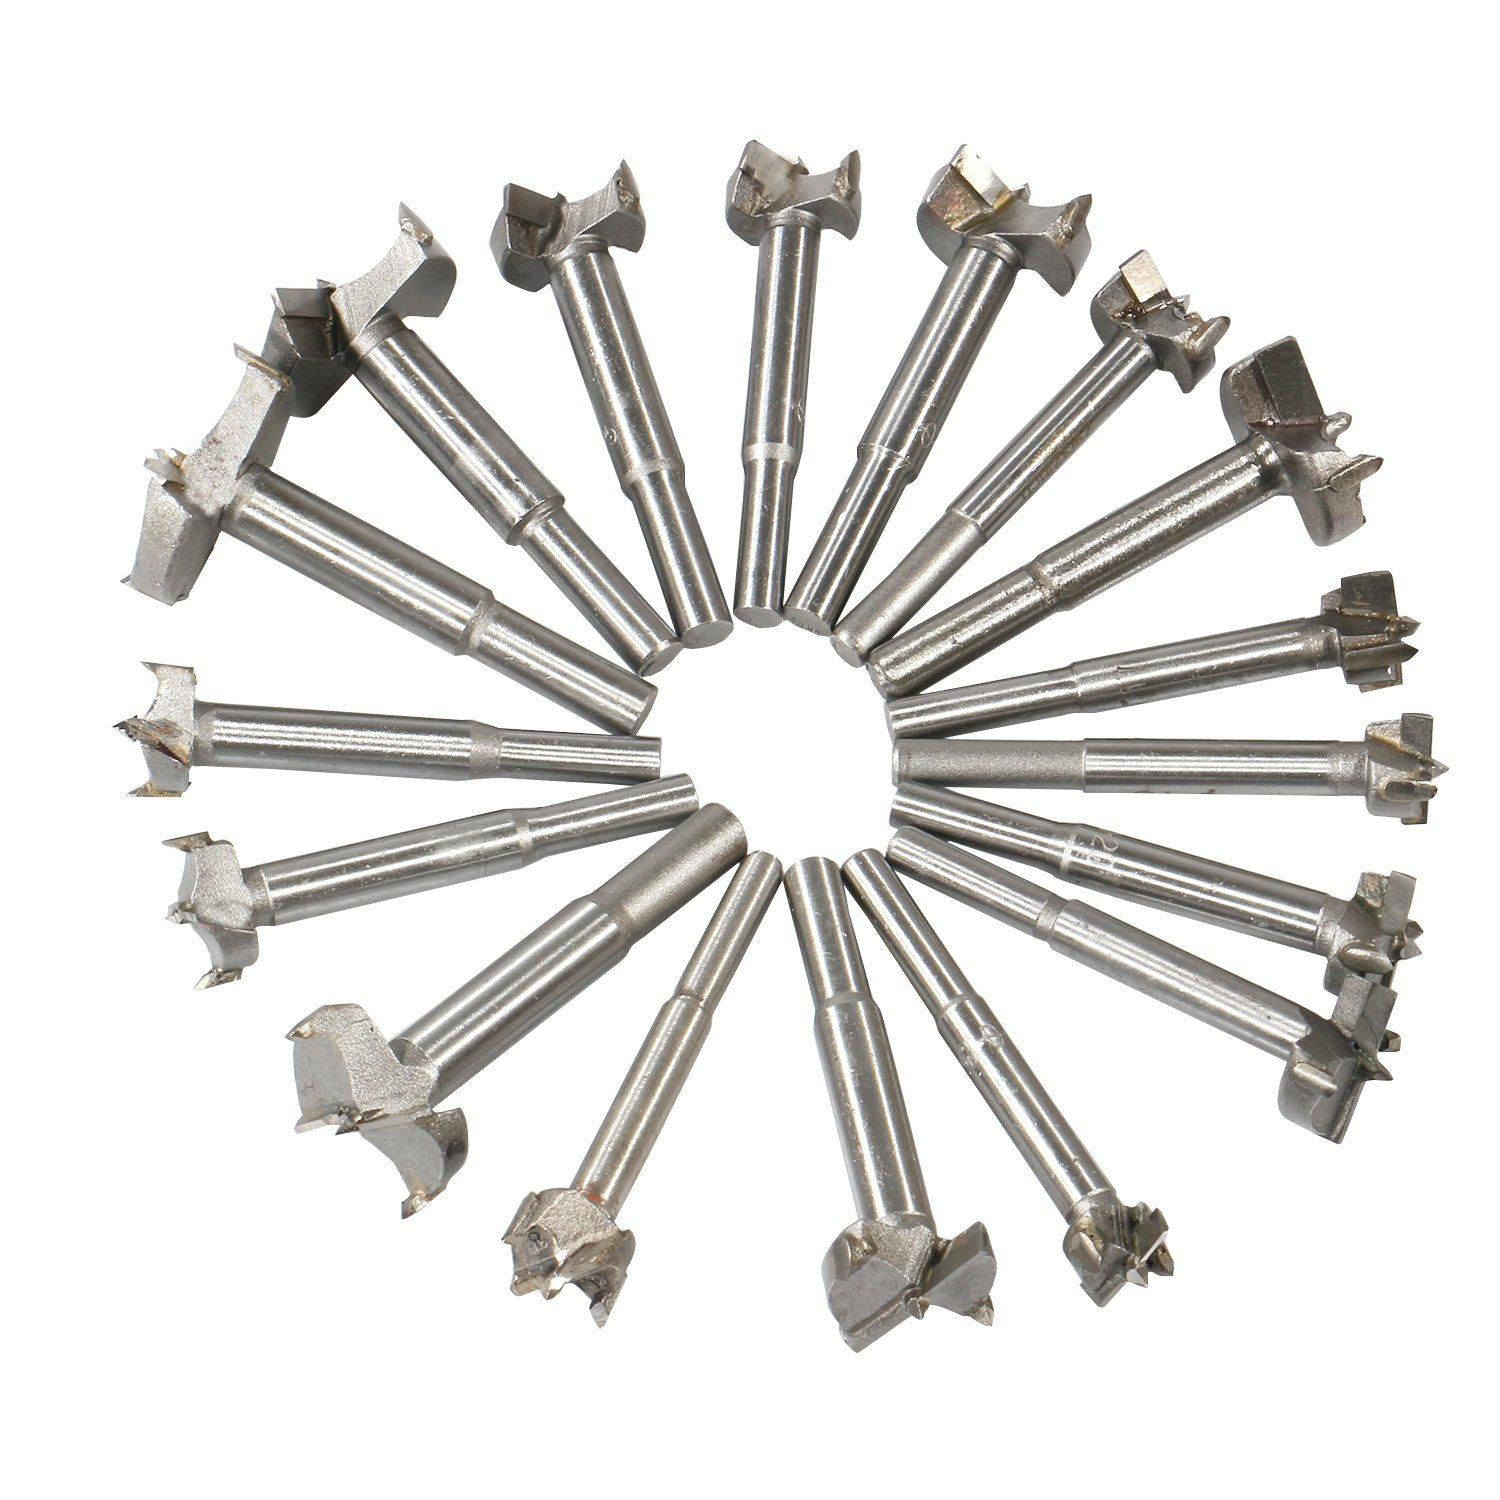 Woodworking Forstner Drill Bits Sets, 17 PCS Carbon High Speed Steel Wood Working Hole Cutter Titanium Coated Wood Boring Hole 1pc 16 18 20 22 25 28 30 35 40 45 50mm woodworking boring wood hole opener saw cutter drill bit wood working drill bits